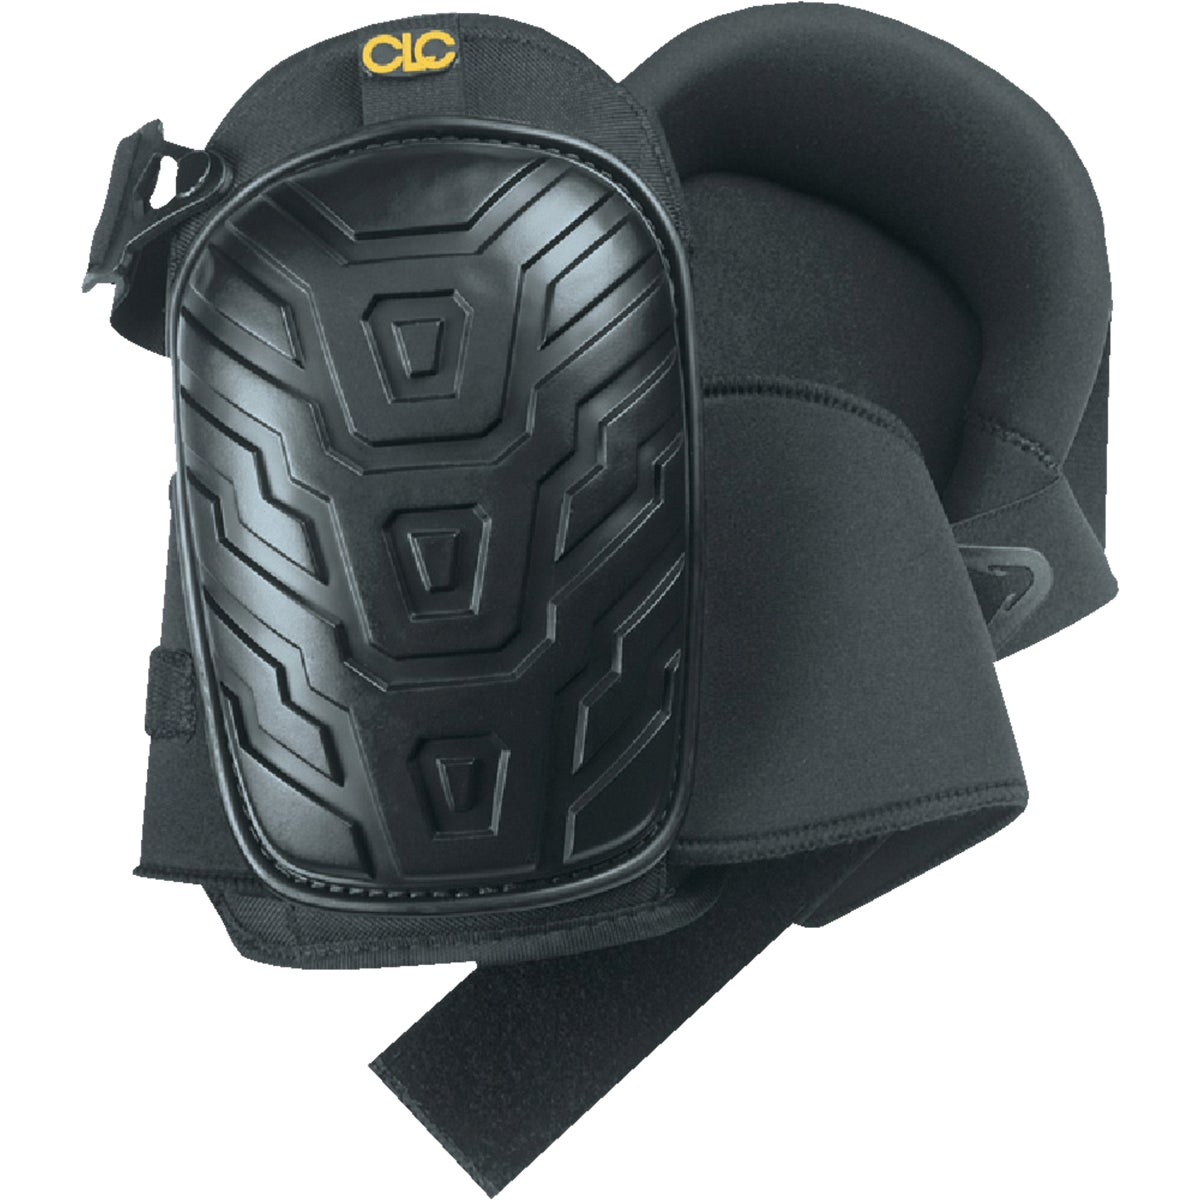 HEAVY DUTY KNEE PADS - CL345 by Channellock®